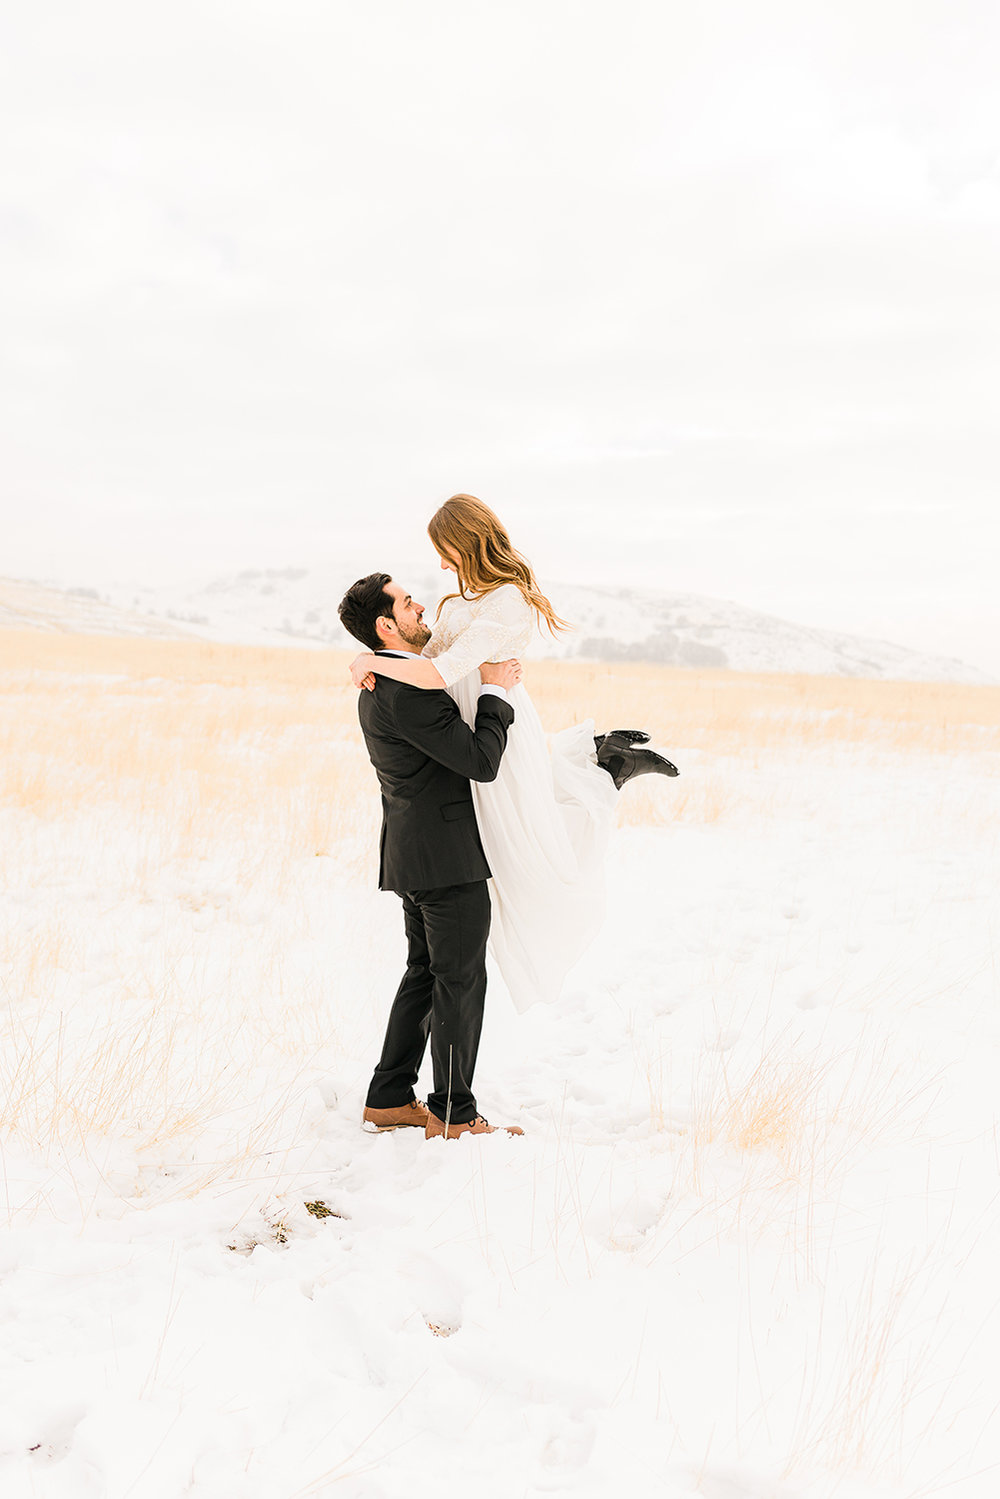 colorado-winter-elopment-colorado-springs-wedding-photographer-26.jpg